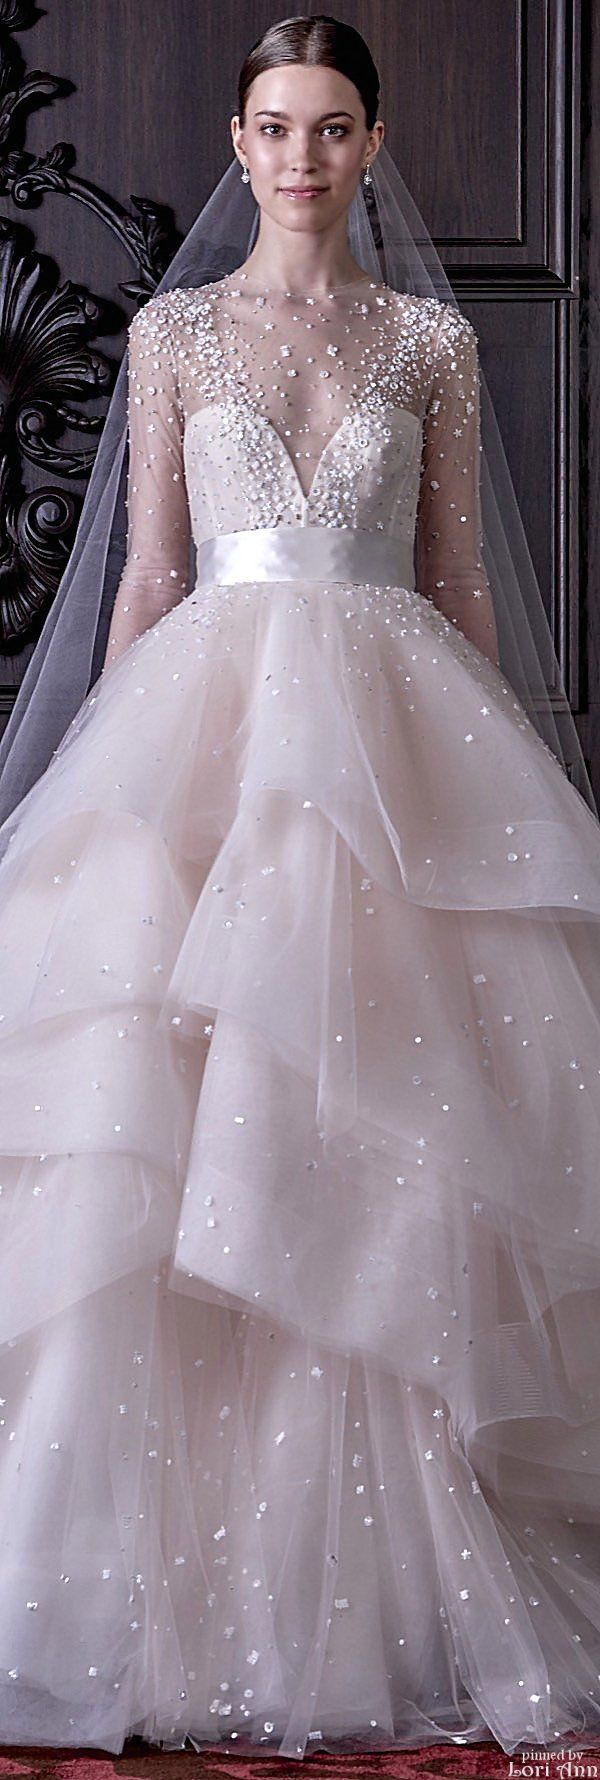 Monique Lhuillier - interesting detail on the tulle. Not a fan of the ribbon at the waistline.